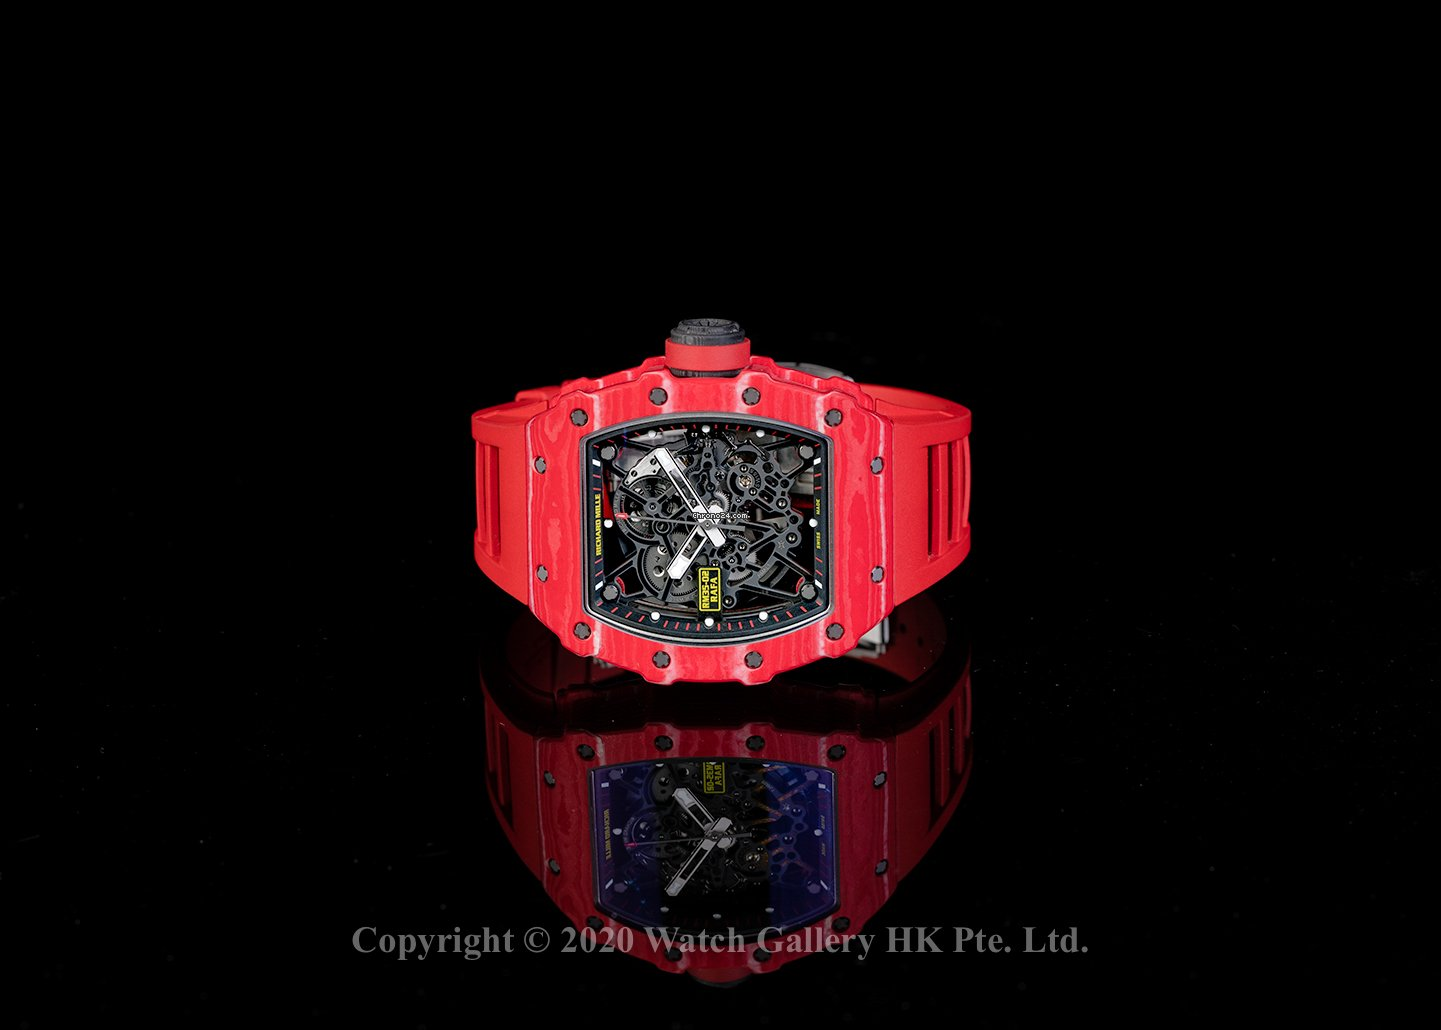 Richard Mille Rafael Nadal For Price On Request For Sale From A Seller On Chrono24